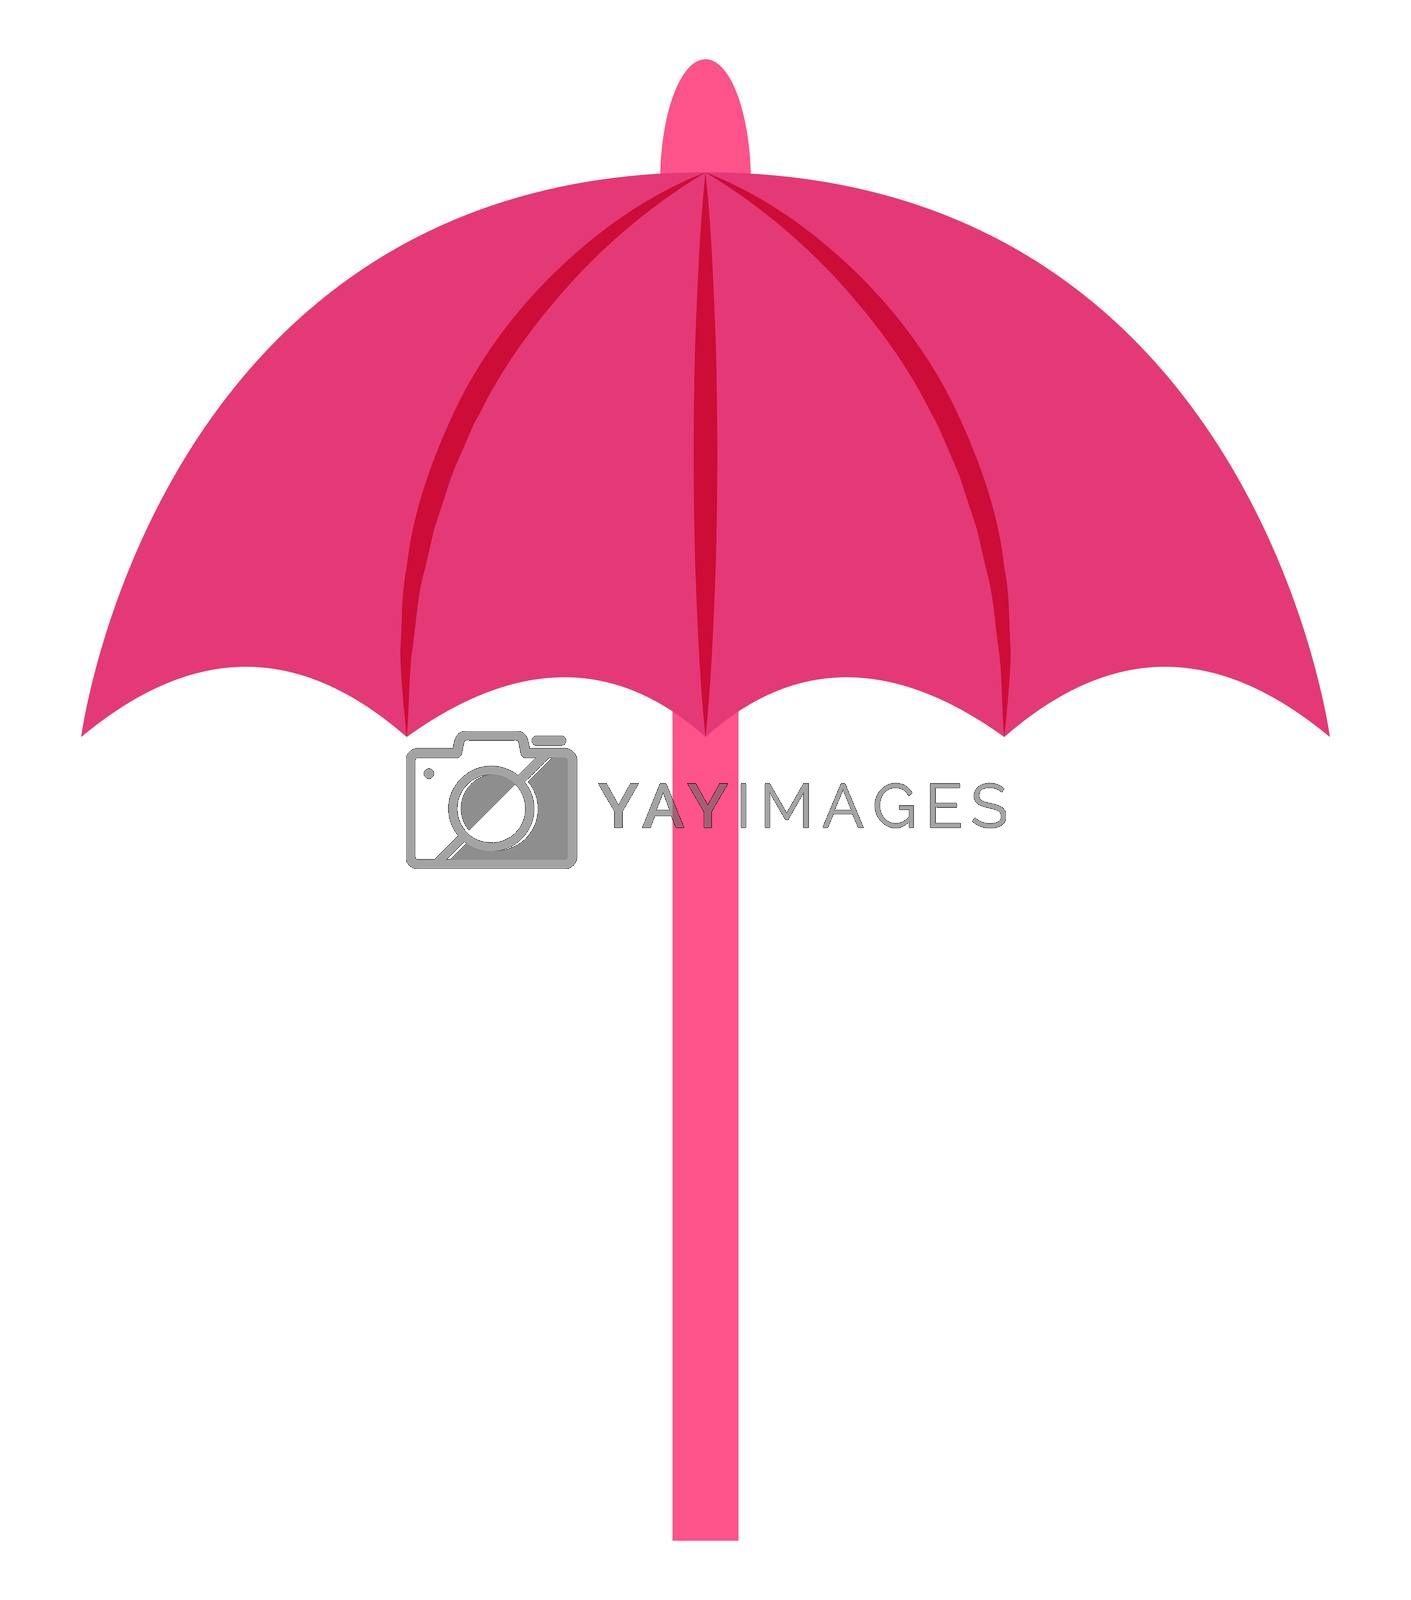 Pink umbrella, illustration, vector on white background